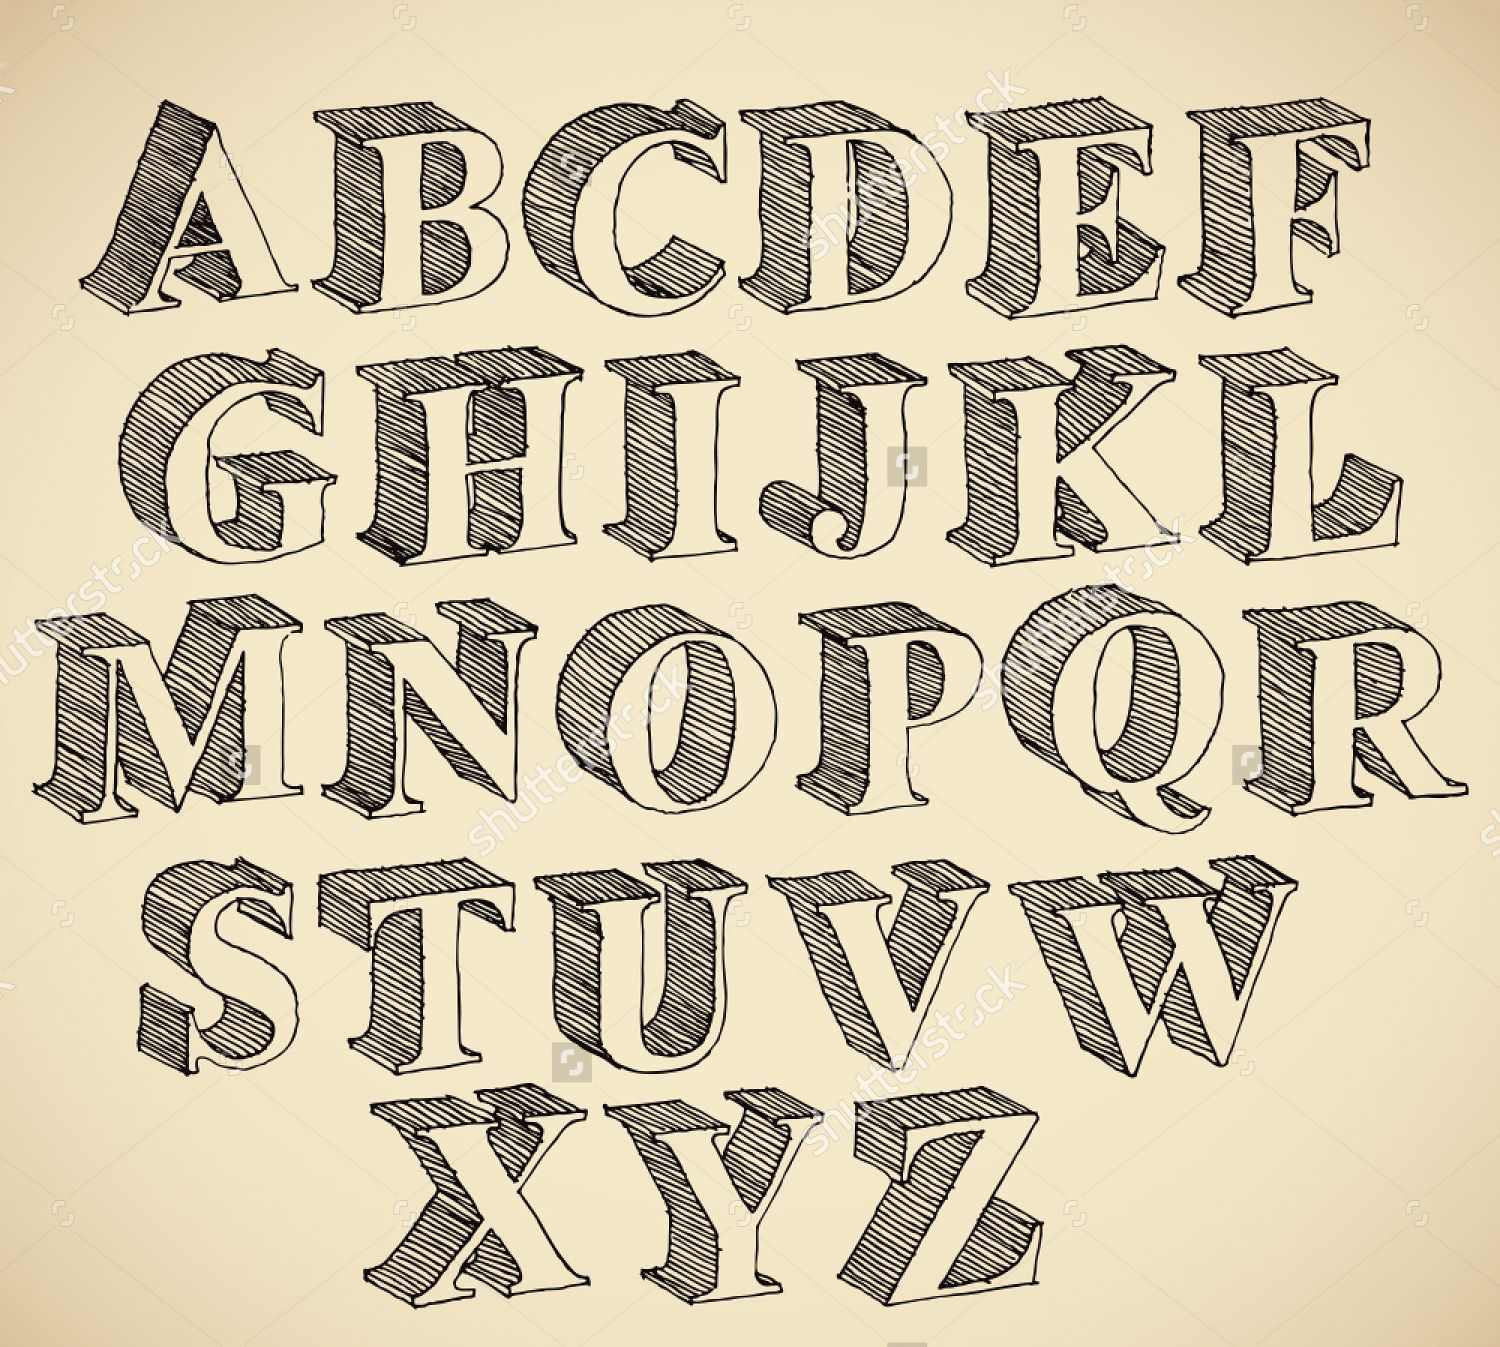 I Really Like This Font Because It Looks Quite Authentic But Stands Out Due To The 3D Shape Of Each Letter